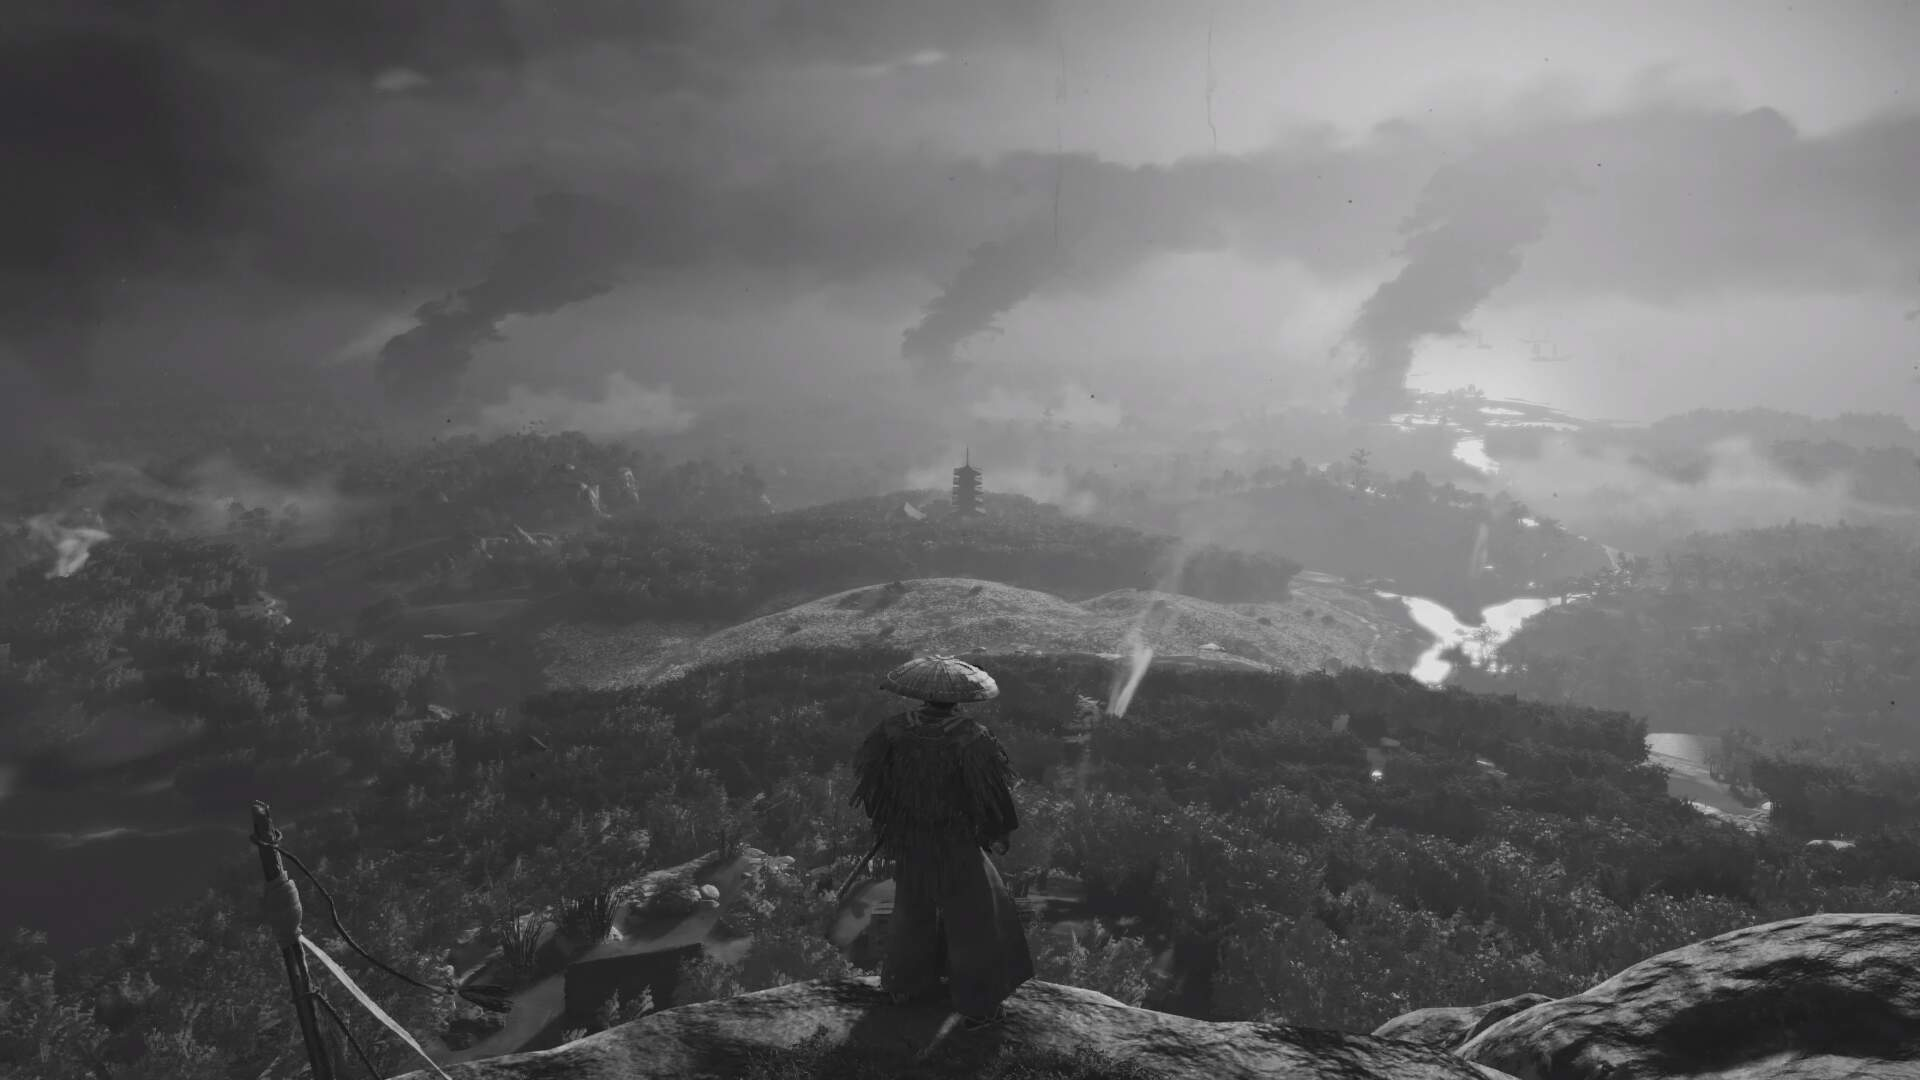 Ghost of Tsushima's Monochrome Filter Pays Homage to Classic Samurai Films